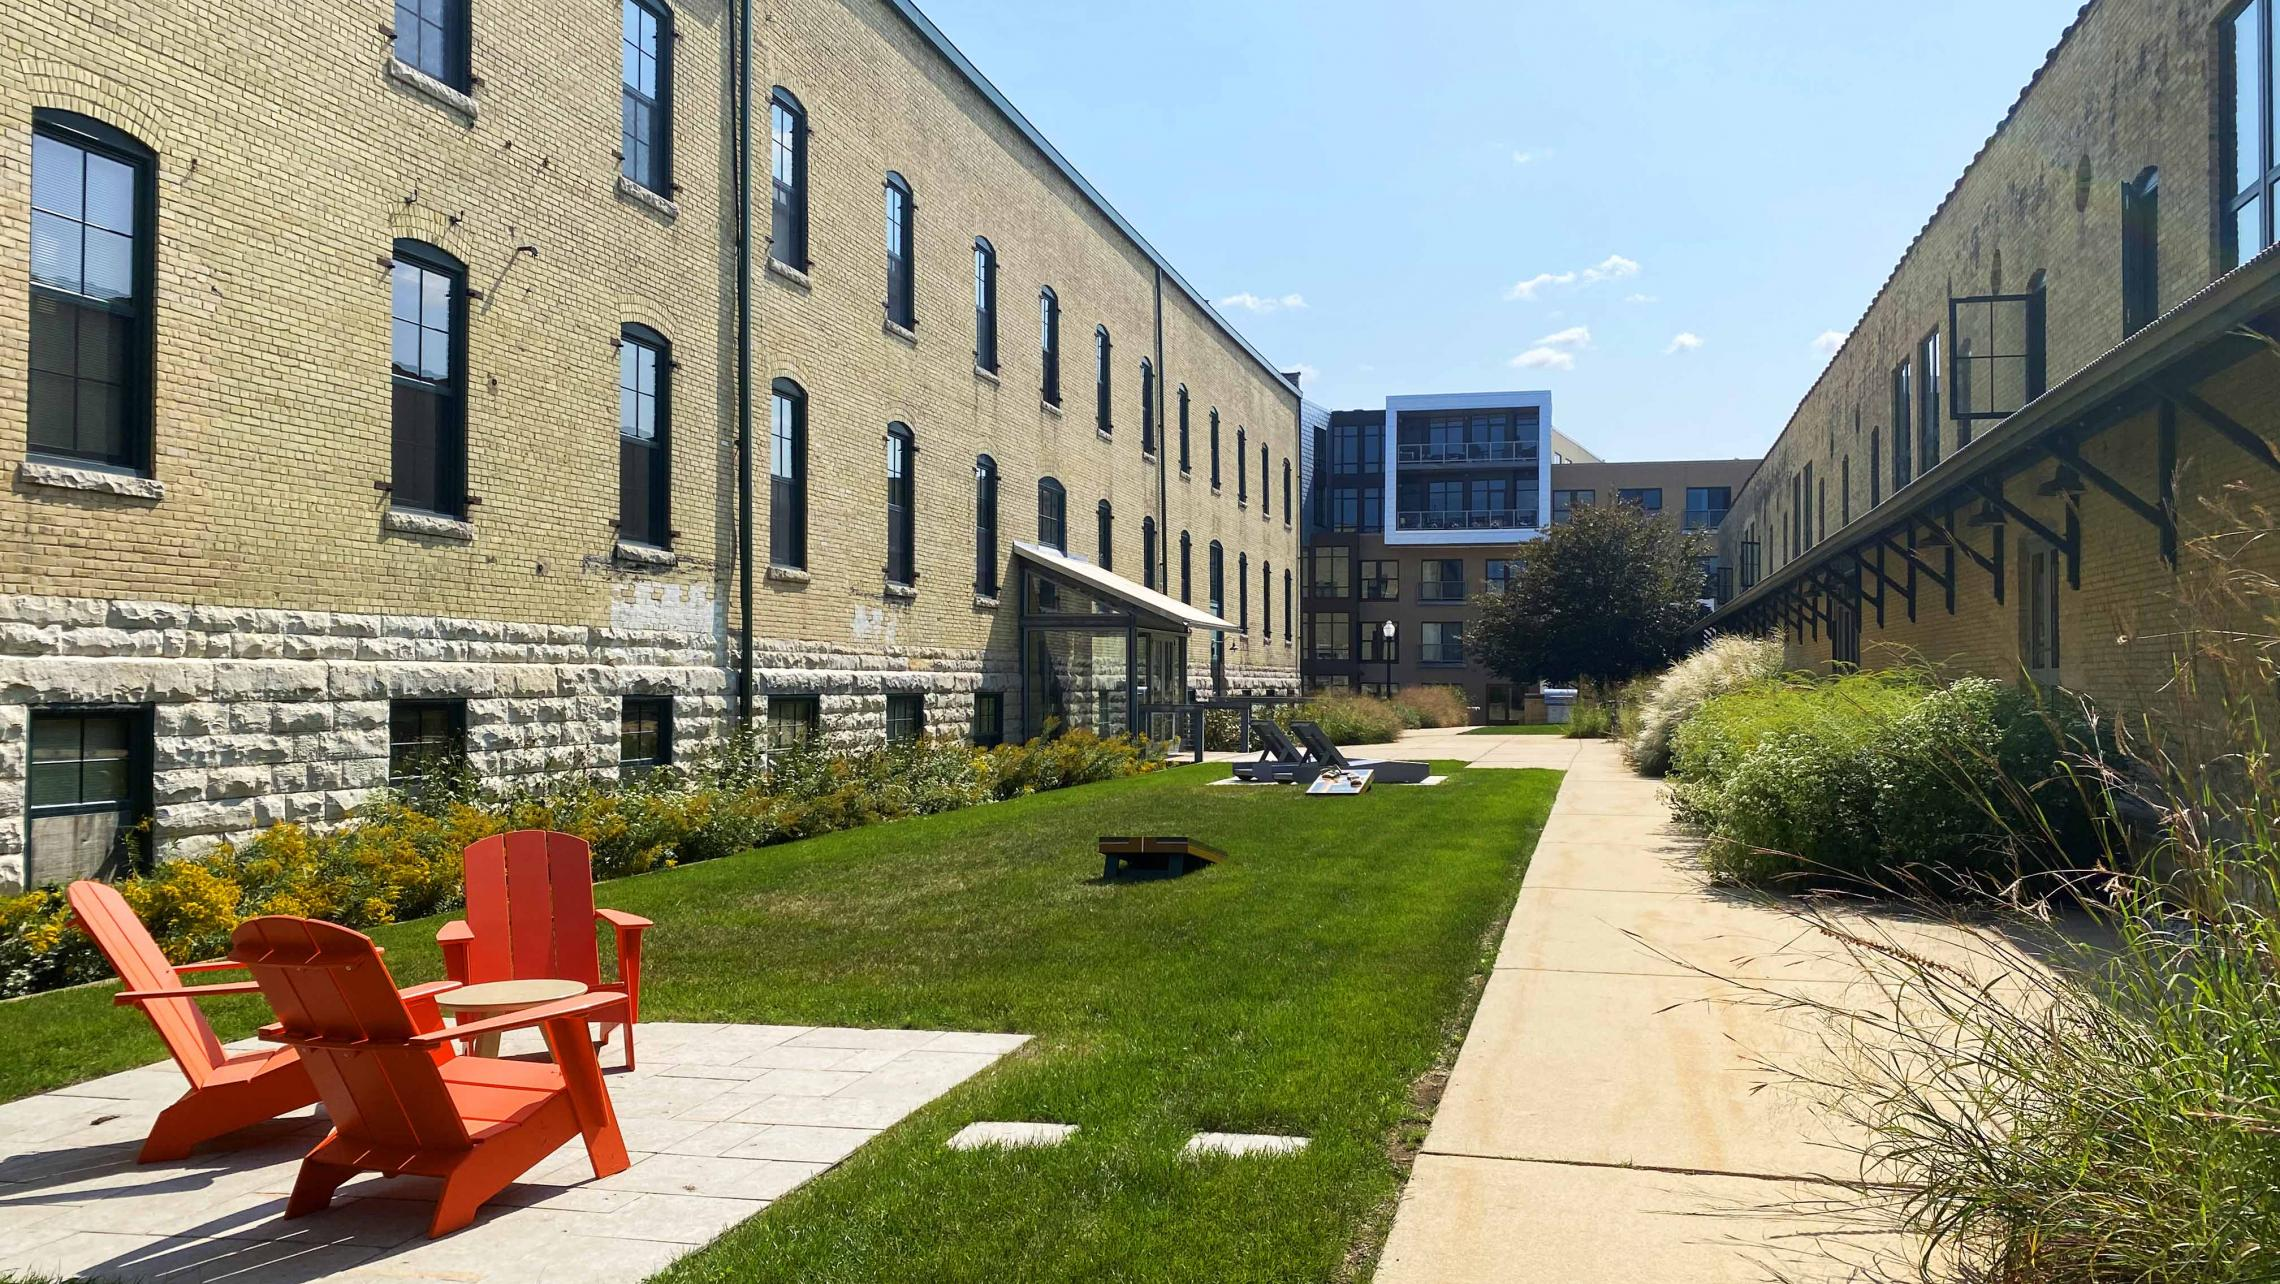 Tobacco-Lofts-Yards-Apartments-Historic-Exposed-Timber-Brick-Lounge-Coutyard-Grill-Fitness-Cats-Bike-Path-Lake-Downtown-Madison